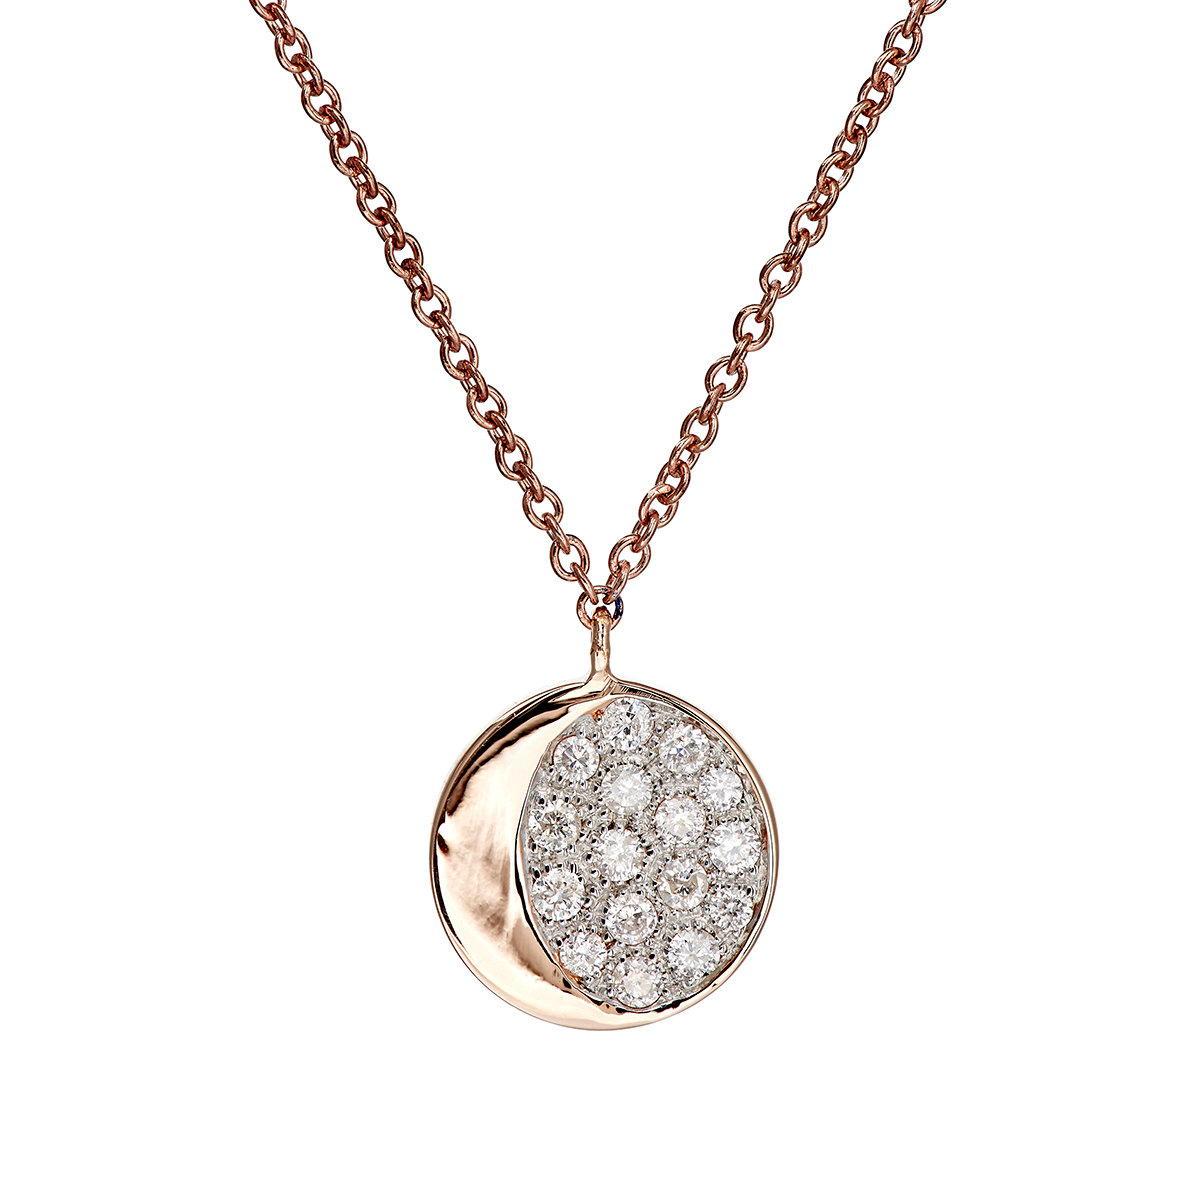 Pamela Love Womens Reversible Moon Phase Pendant Necklace OW85K